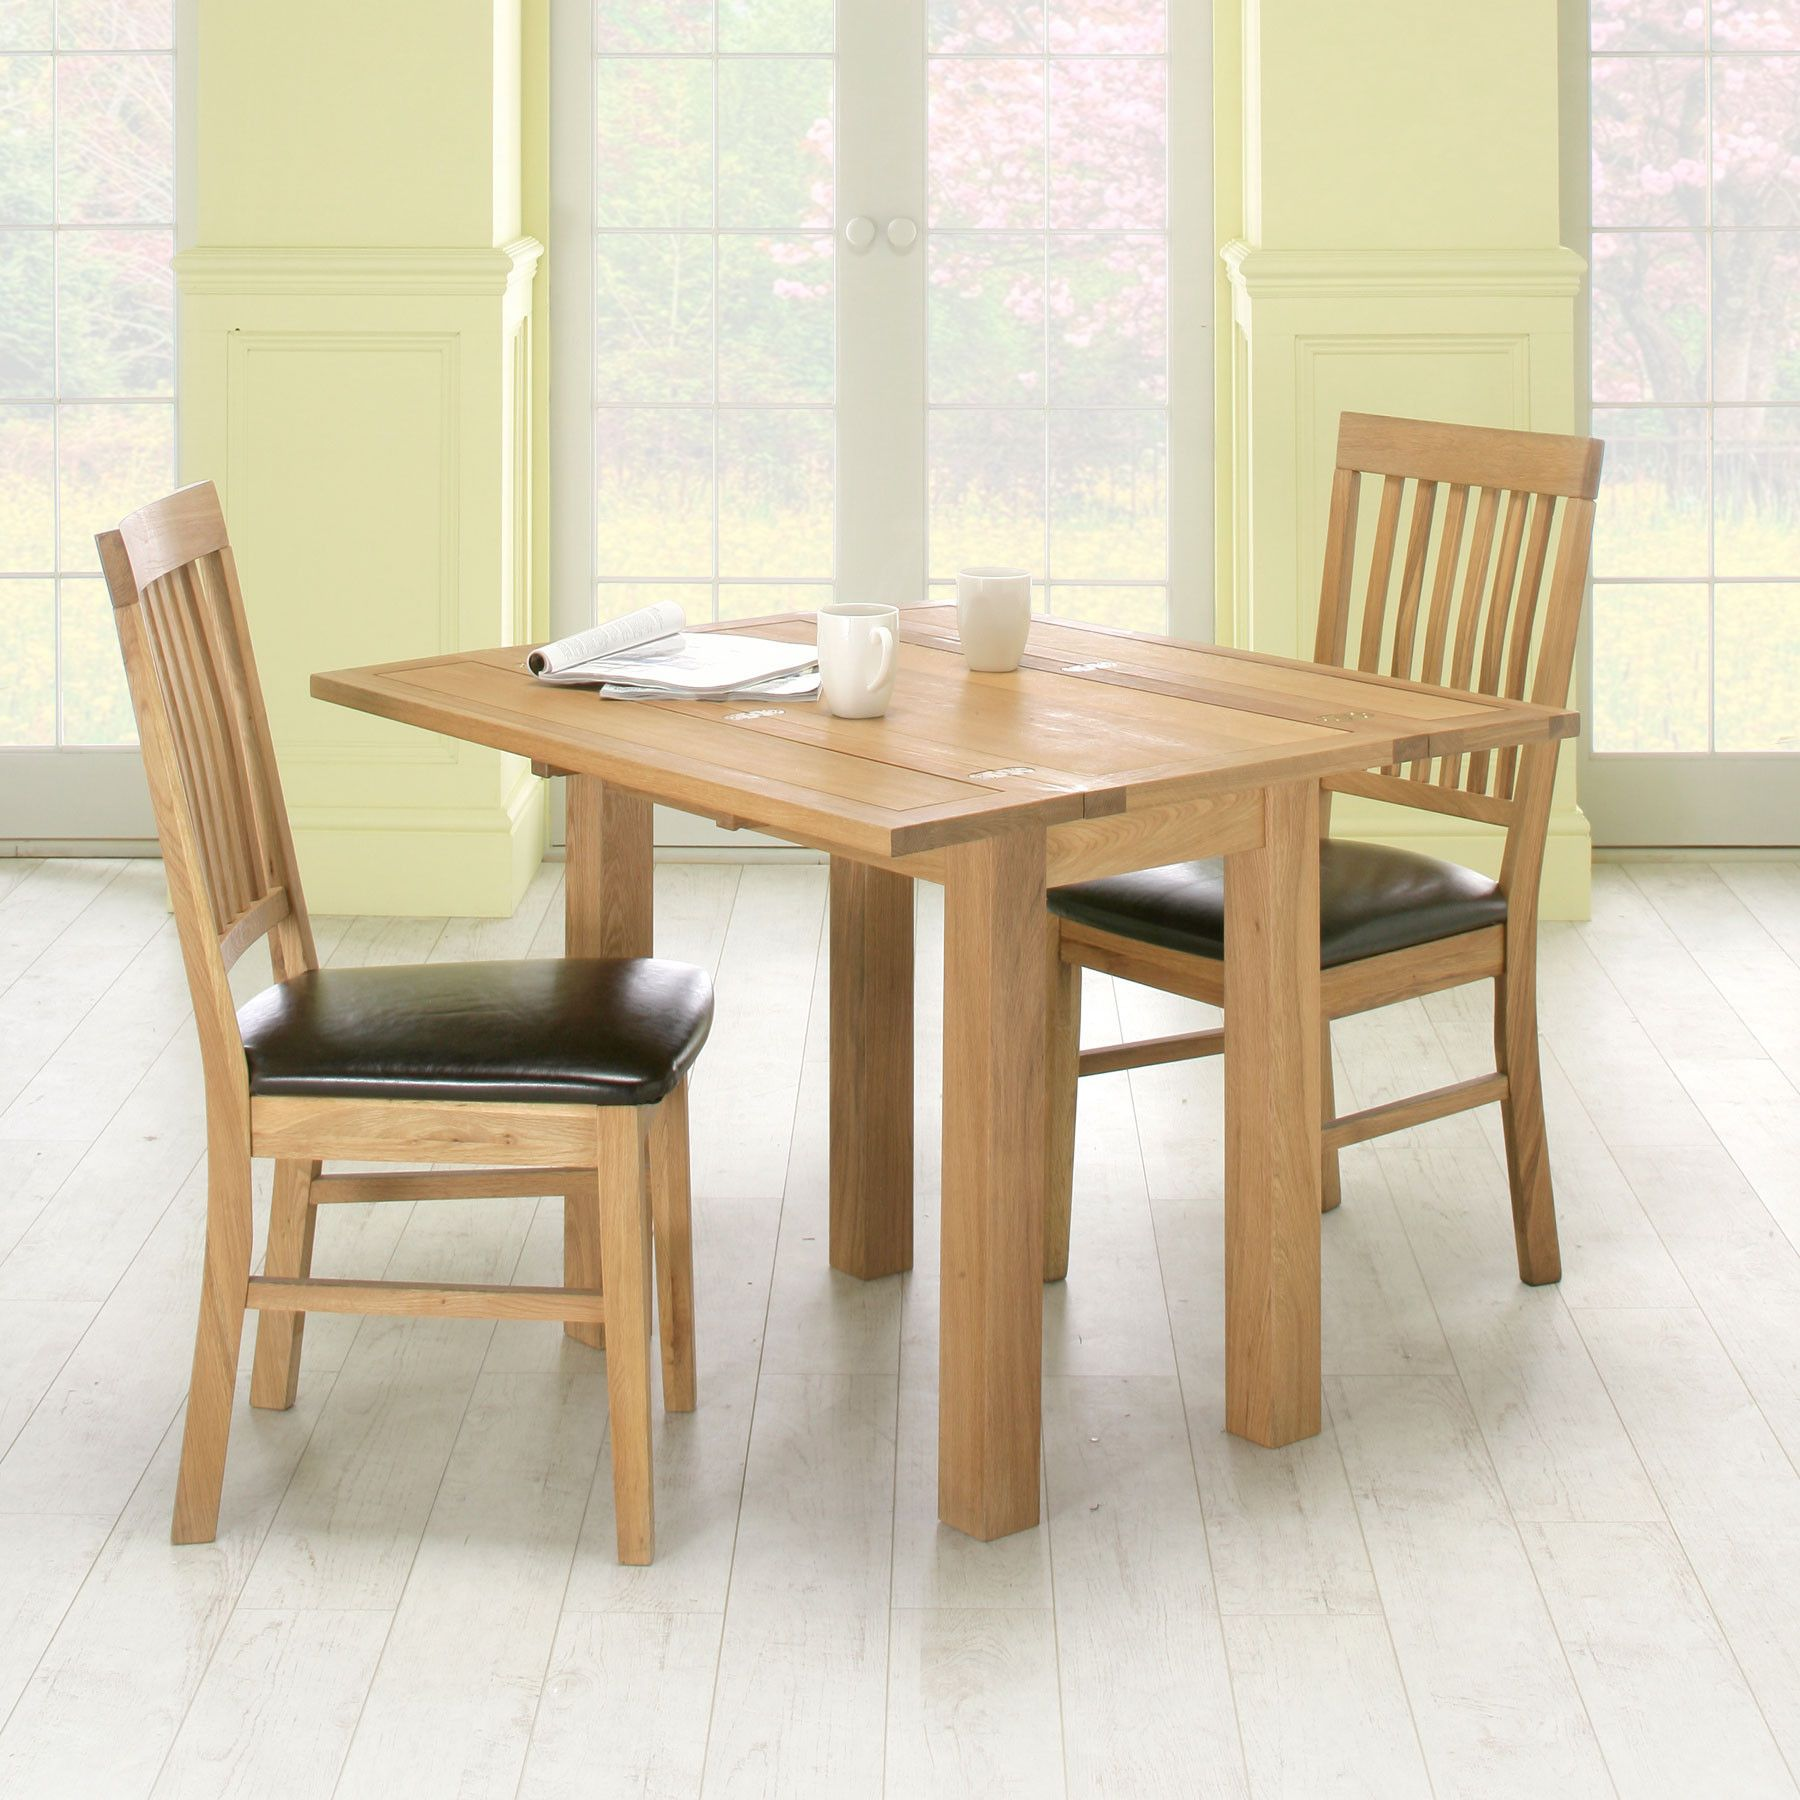 Conran Oiled Oak Fold Up Dining Table And 2 Chairs  Kintyre New 2 Chair Dining Room Set Review